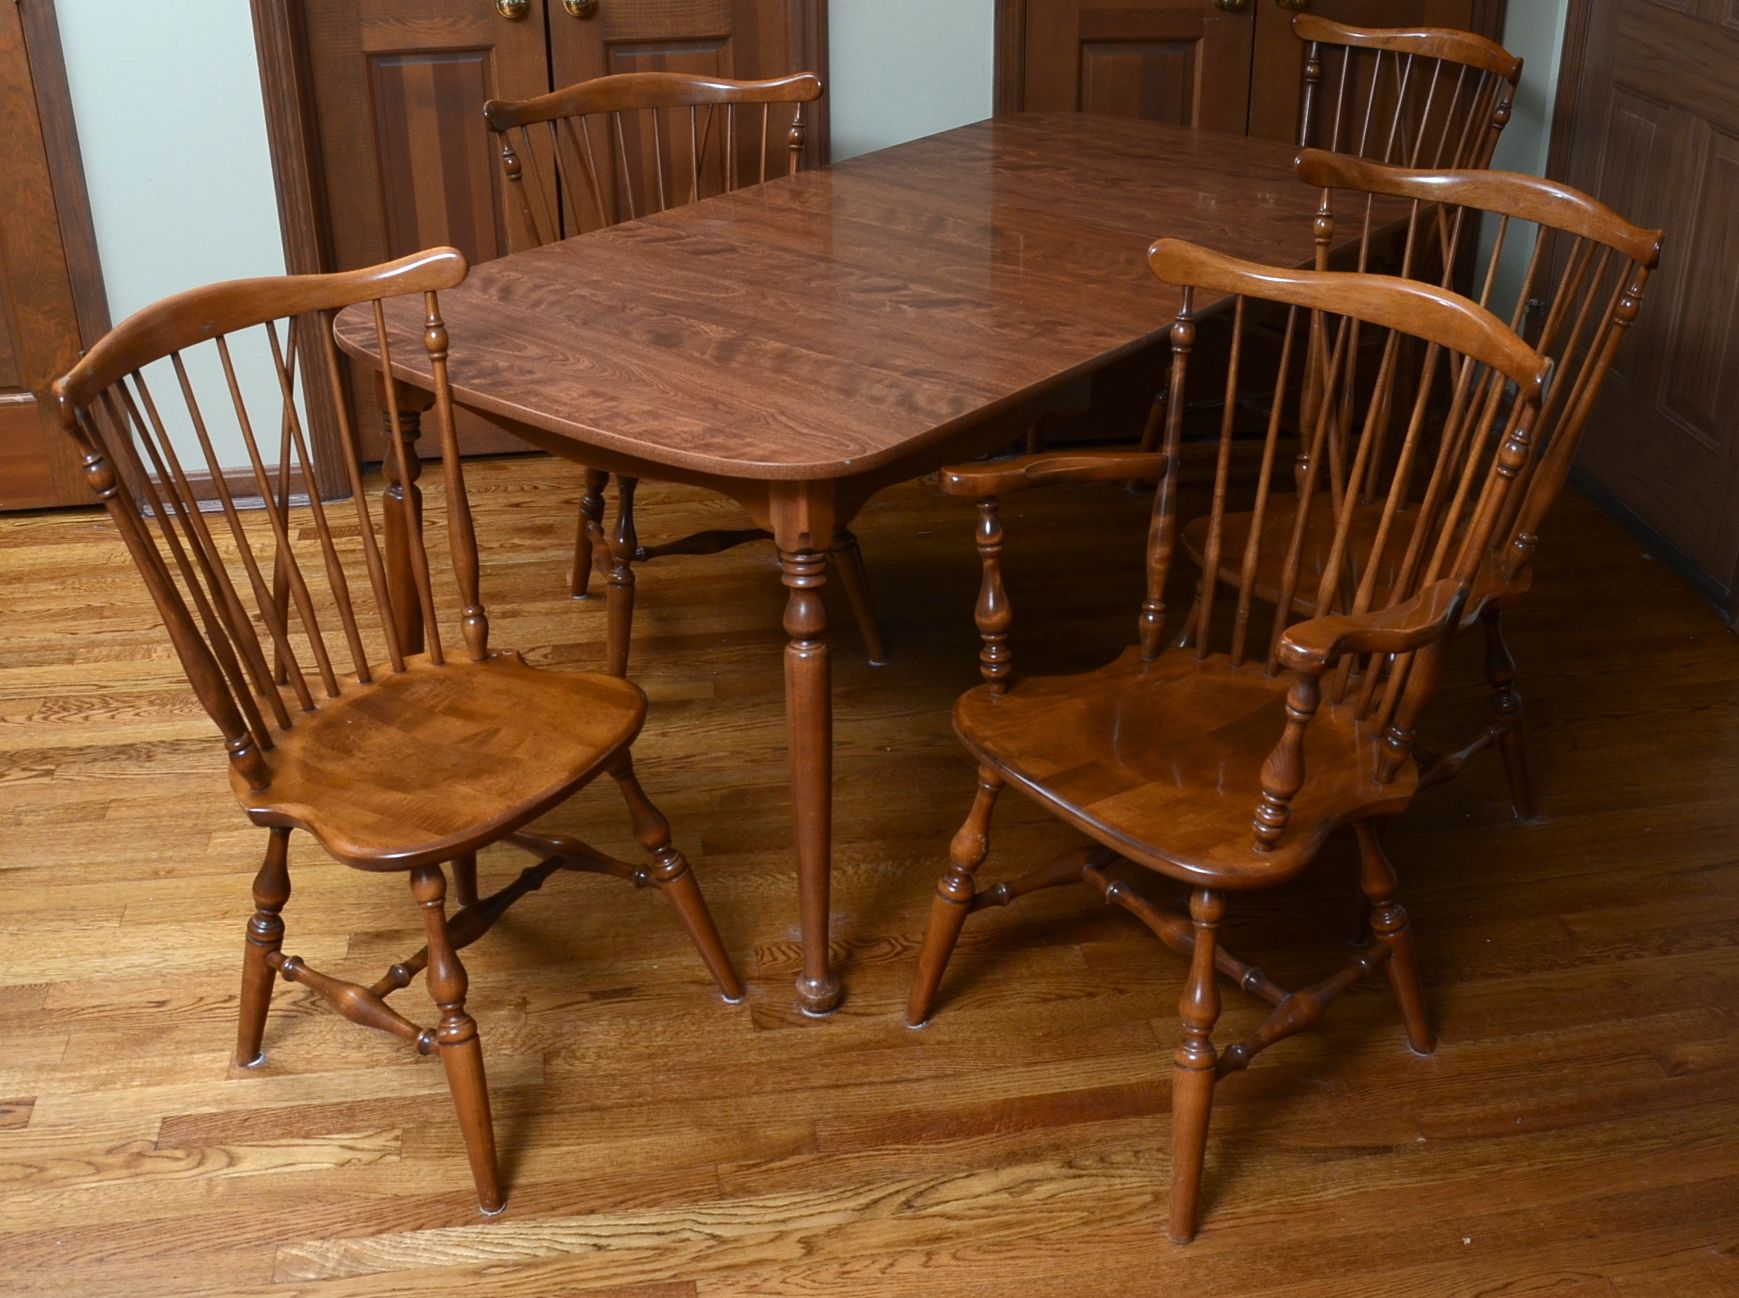 Ethan Allen Dining Table and ChairsEBTH